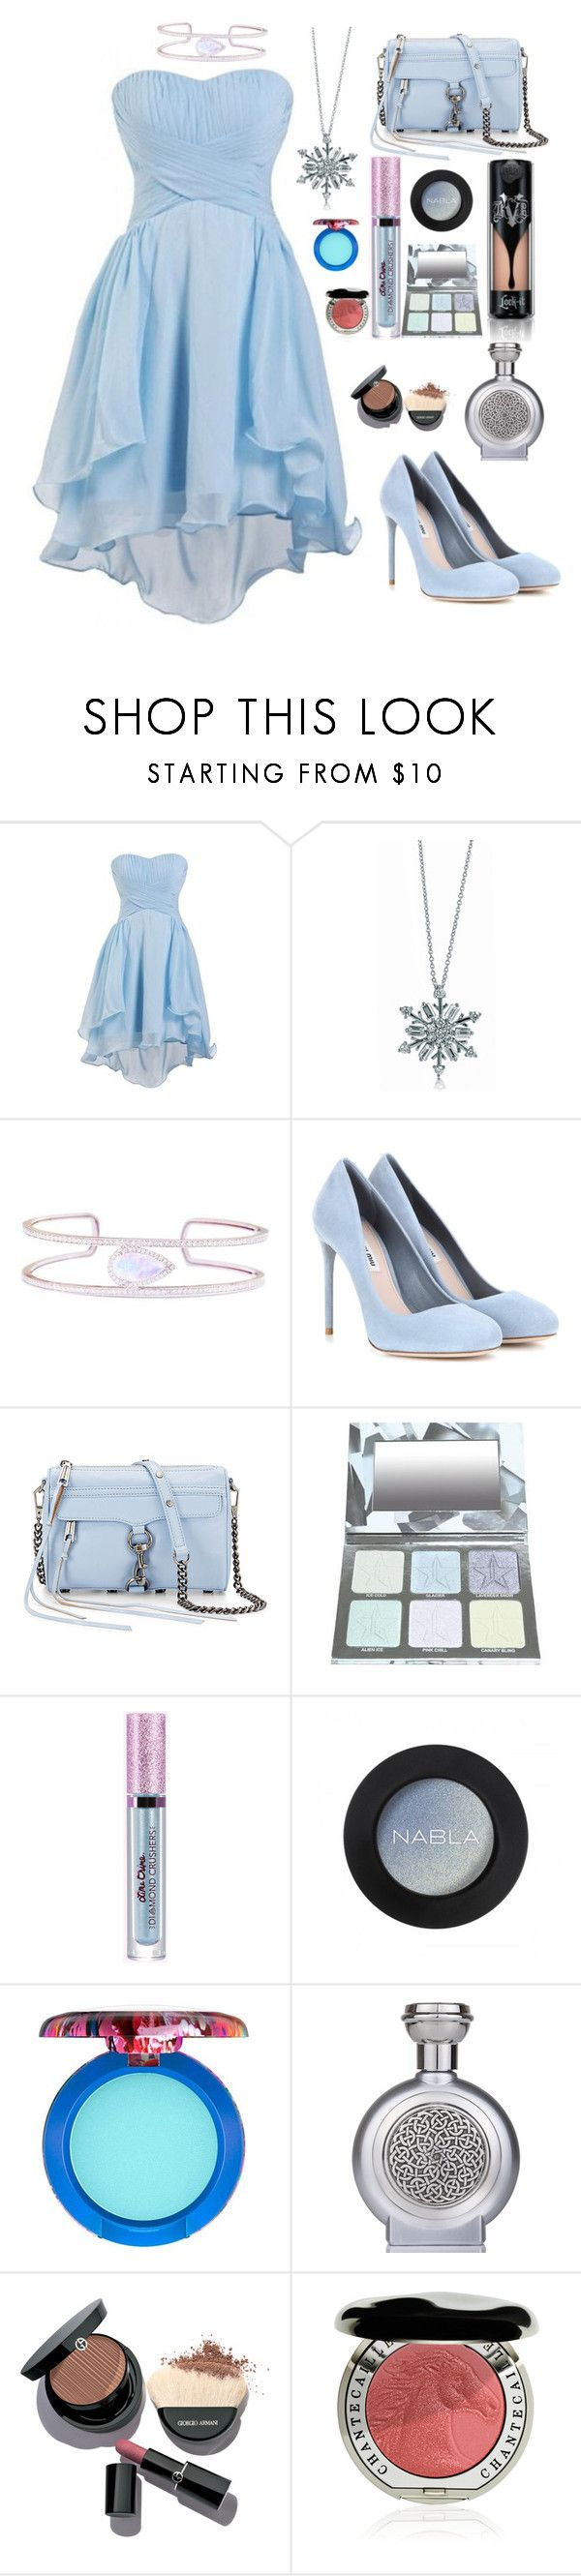 """In New York, you can be new women"" by lucyheartyui ❤ liked on Polyvore featuring BERRICLE, Luna Skye, Miu Miu, Rebecca Minkoff, Kat Von D, MAC Cosmetics, Boadicea the Victorious, Giorgio Armani, Chantecaille and vintage"